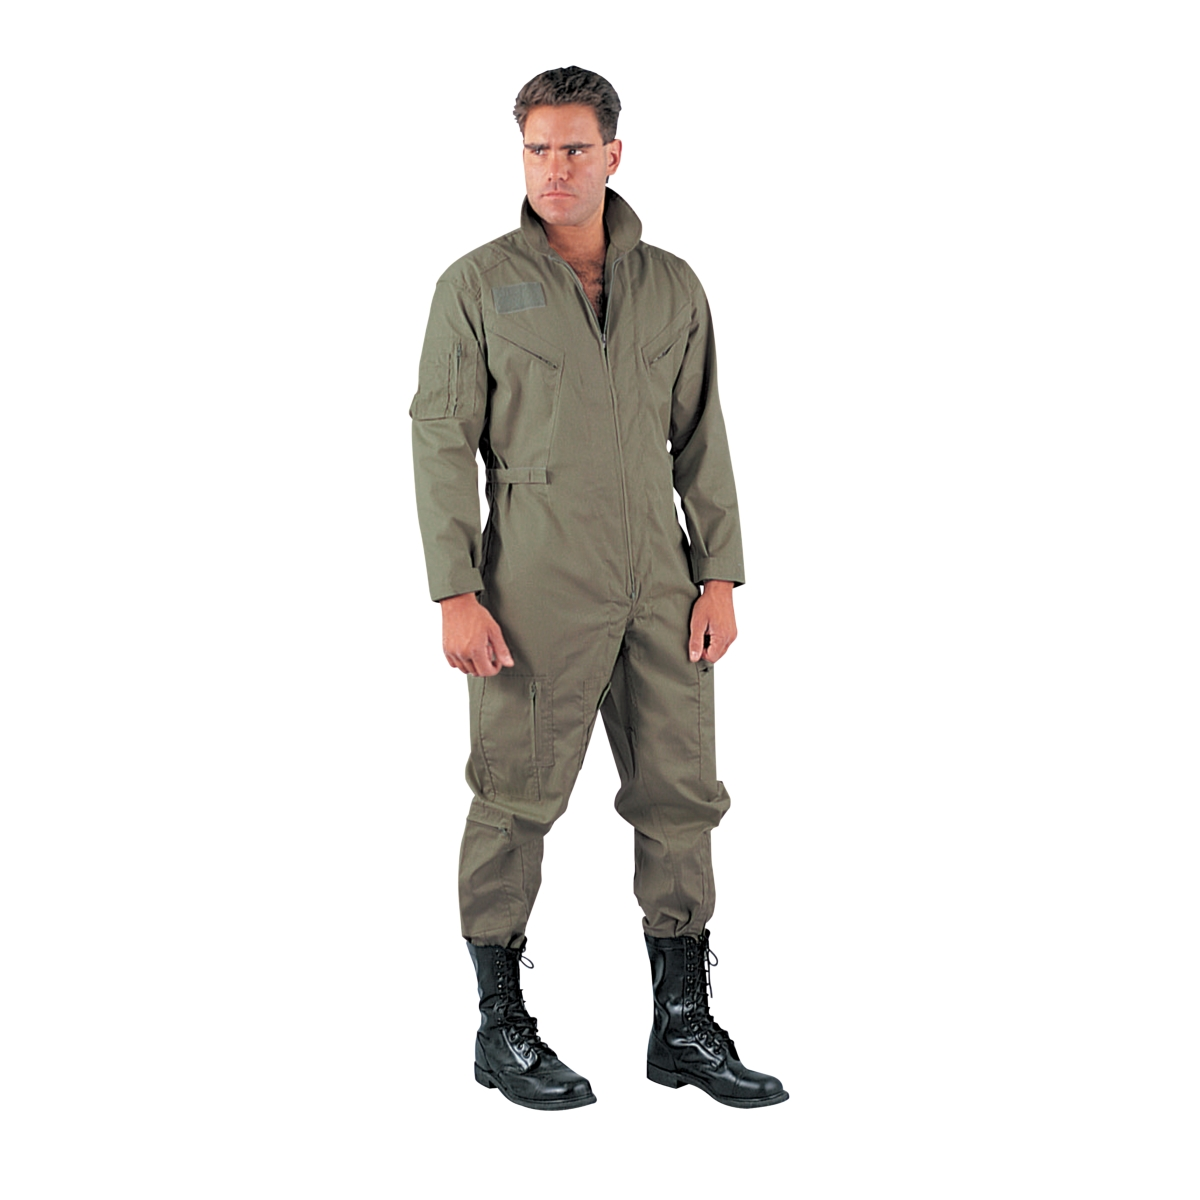 Khaki Air Force CWU-27P Style Flightsuit, Coverall by Rothco